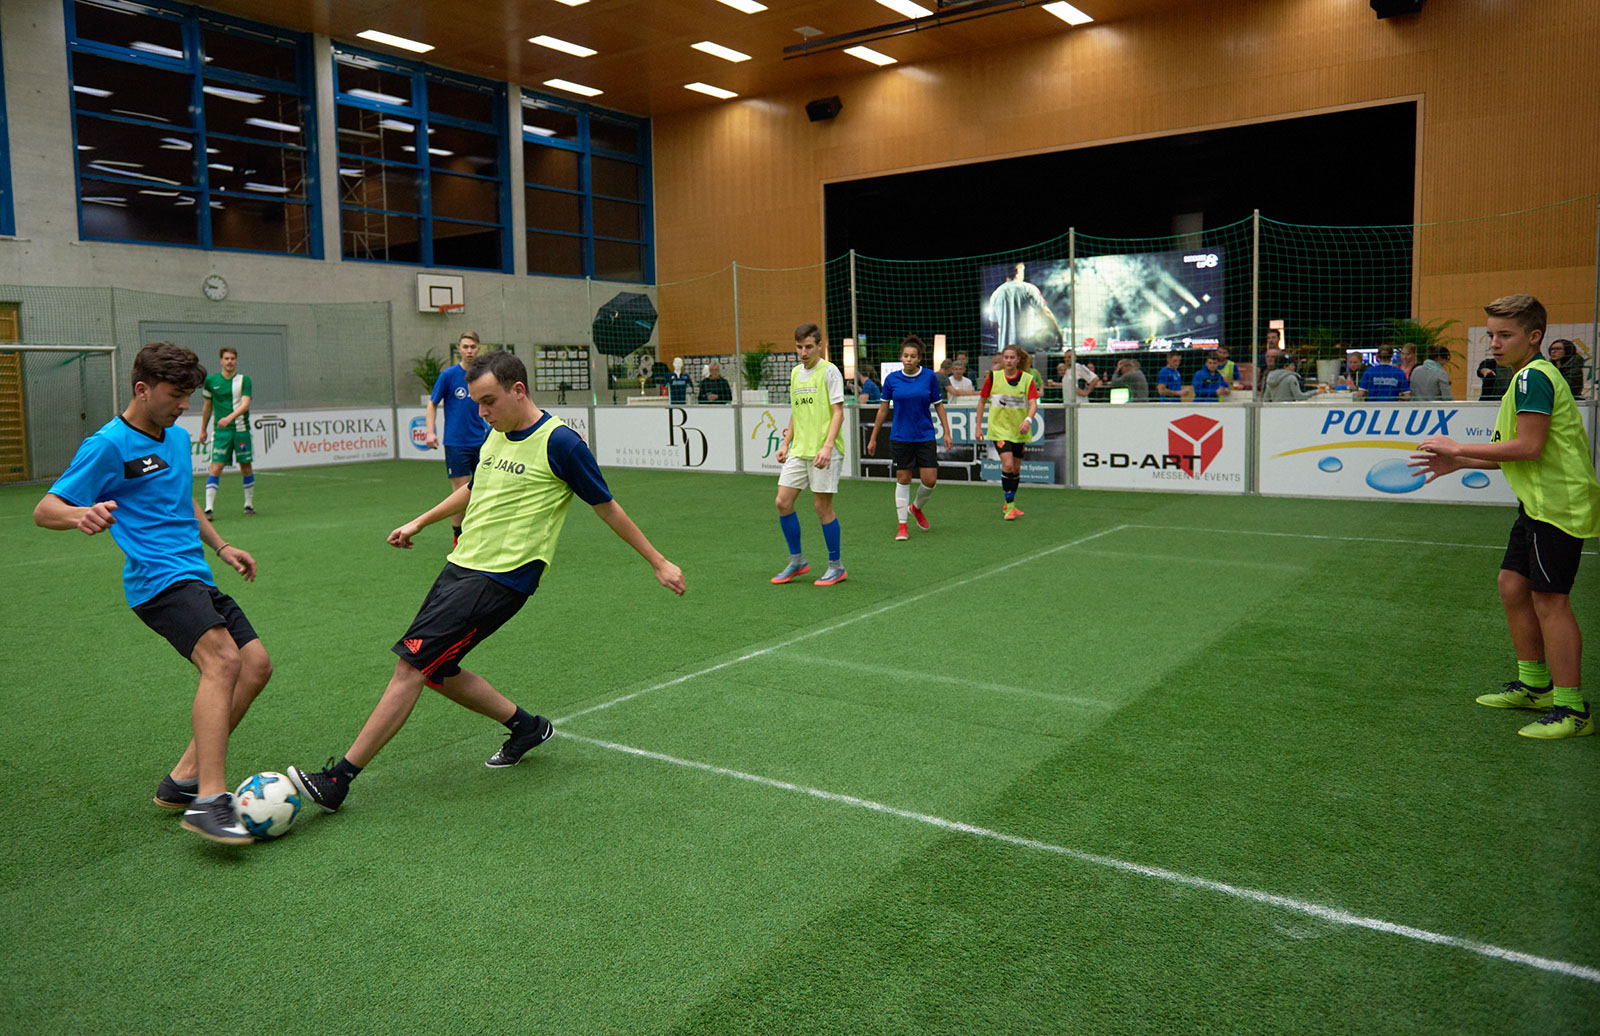 Bodensee-Cup_20171110_215541.jpg